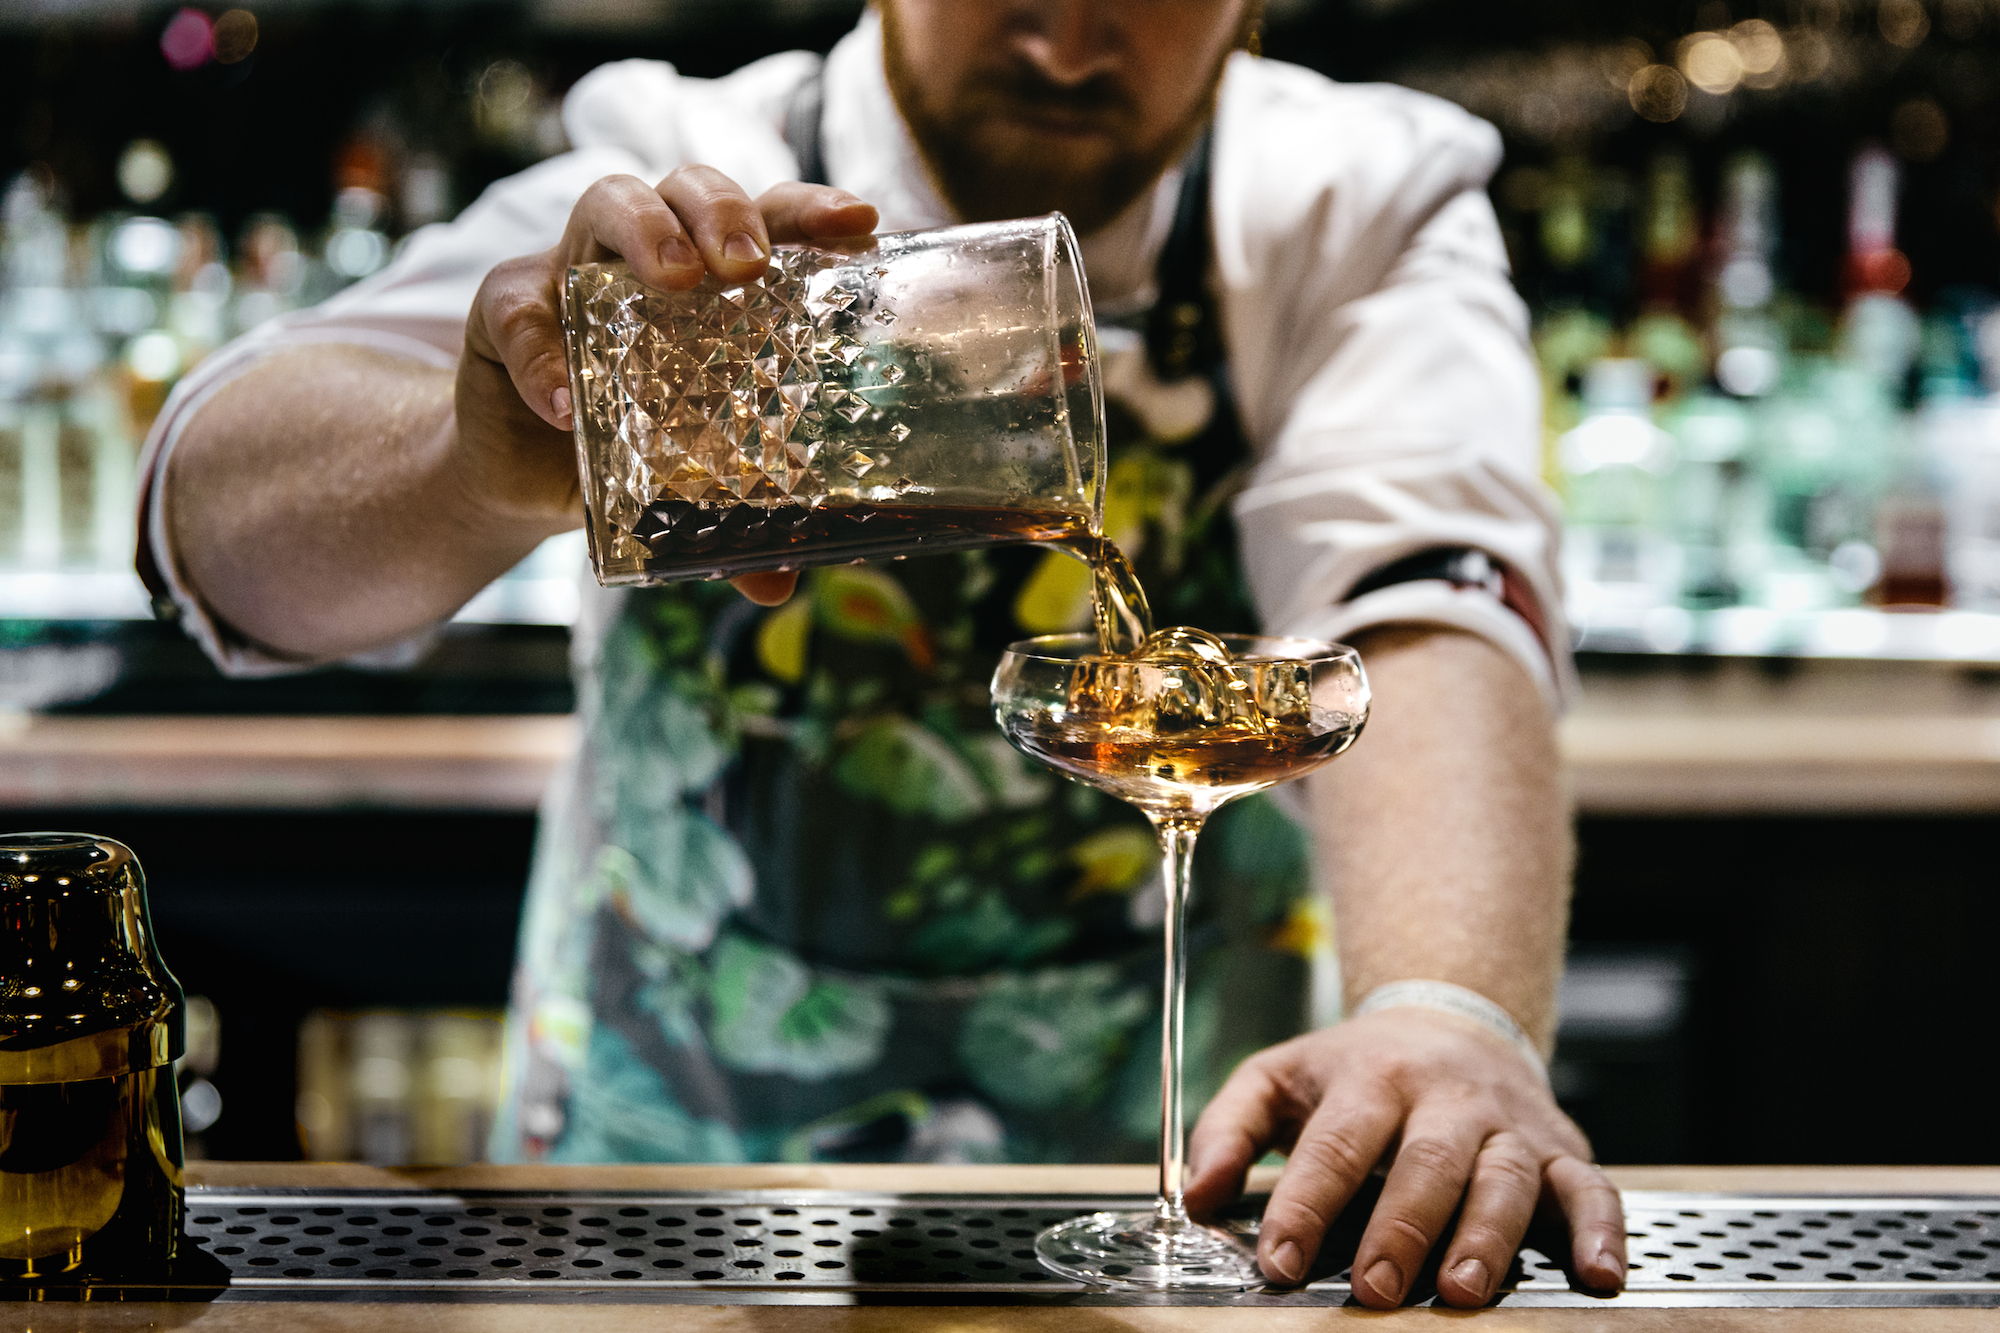 The Big Mamma Group offers Trendy, Fresh, Authentic Italian Dining in Paris as well as creative cocktails like the one being mixed by this mixologist in a Martini glass.